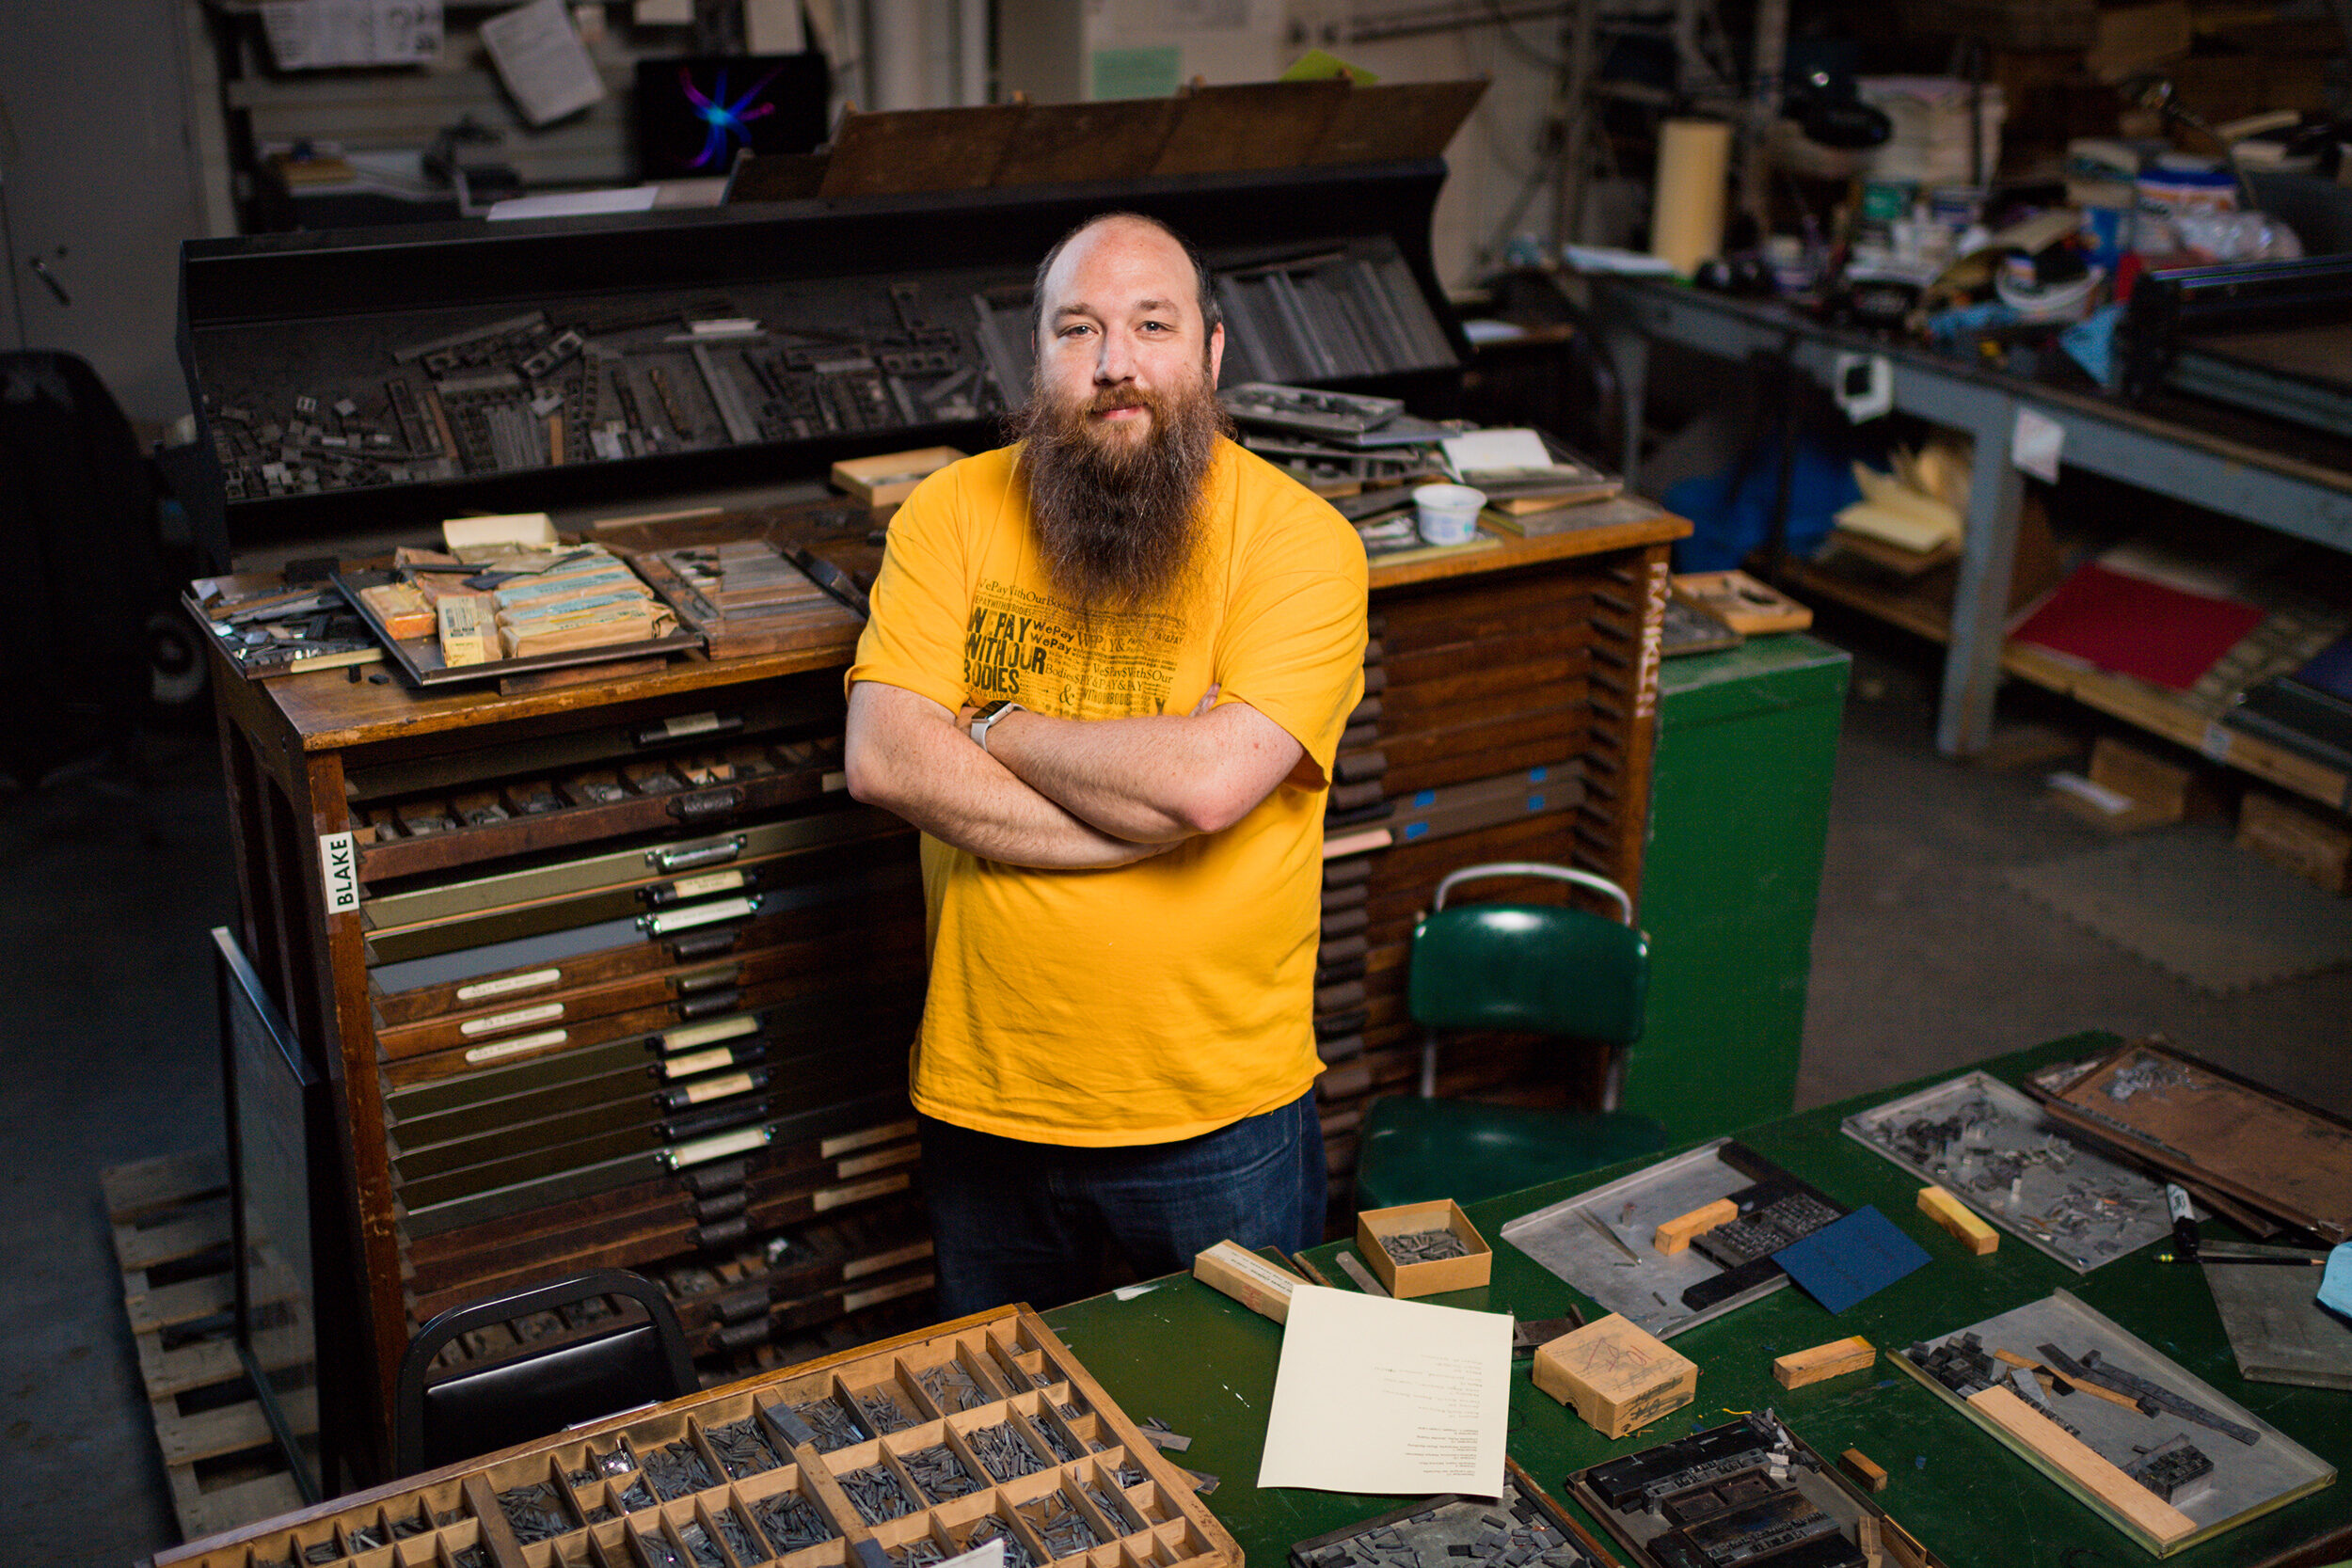 Lecturer revisits English language through traditional printing |  The University Record